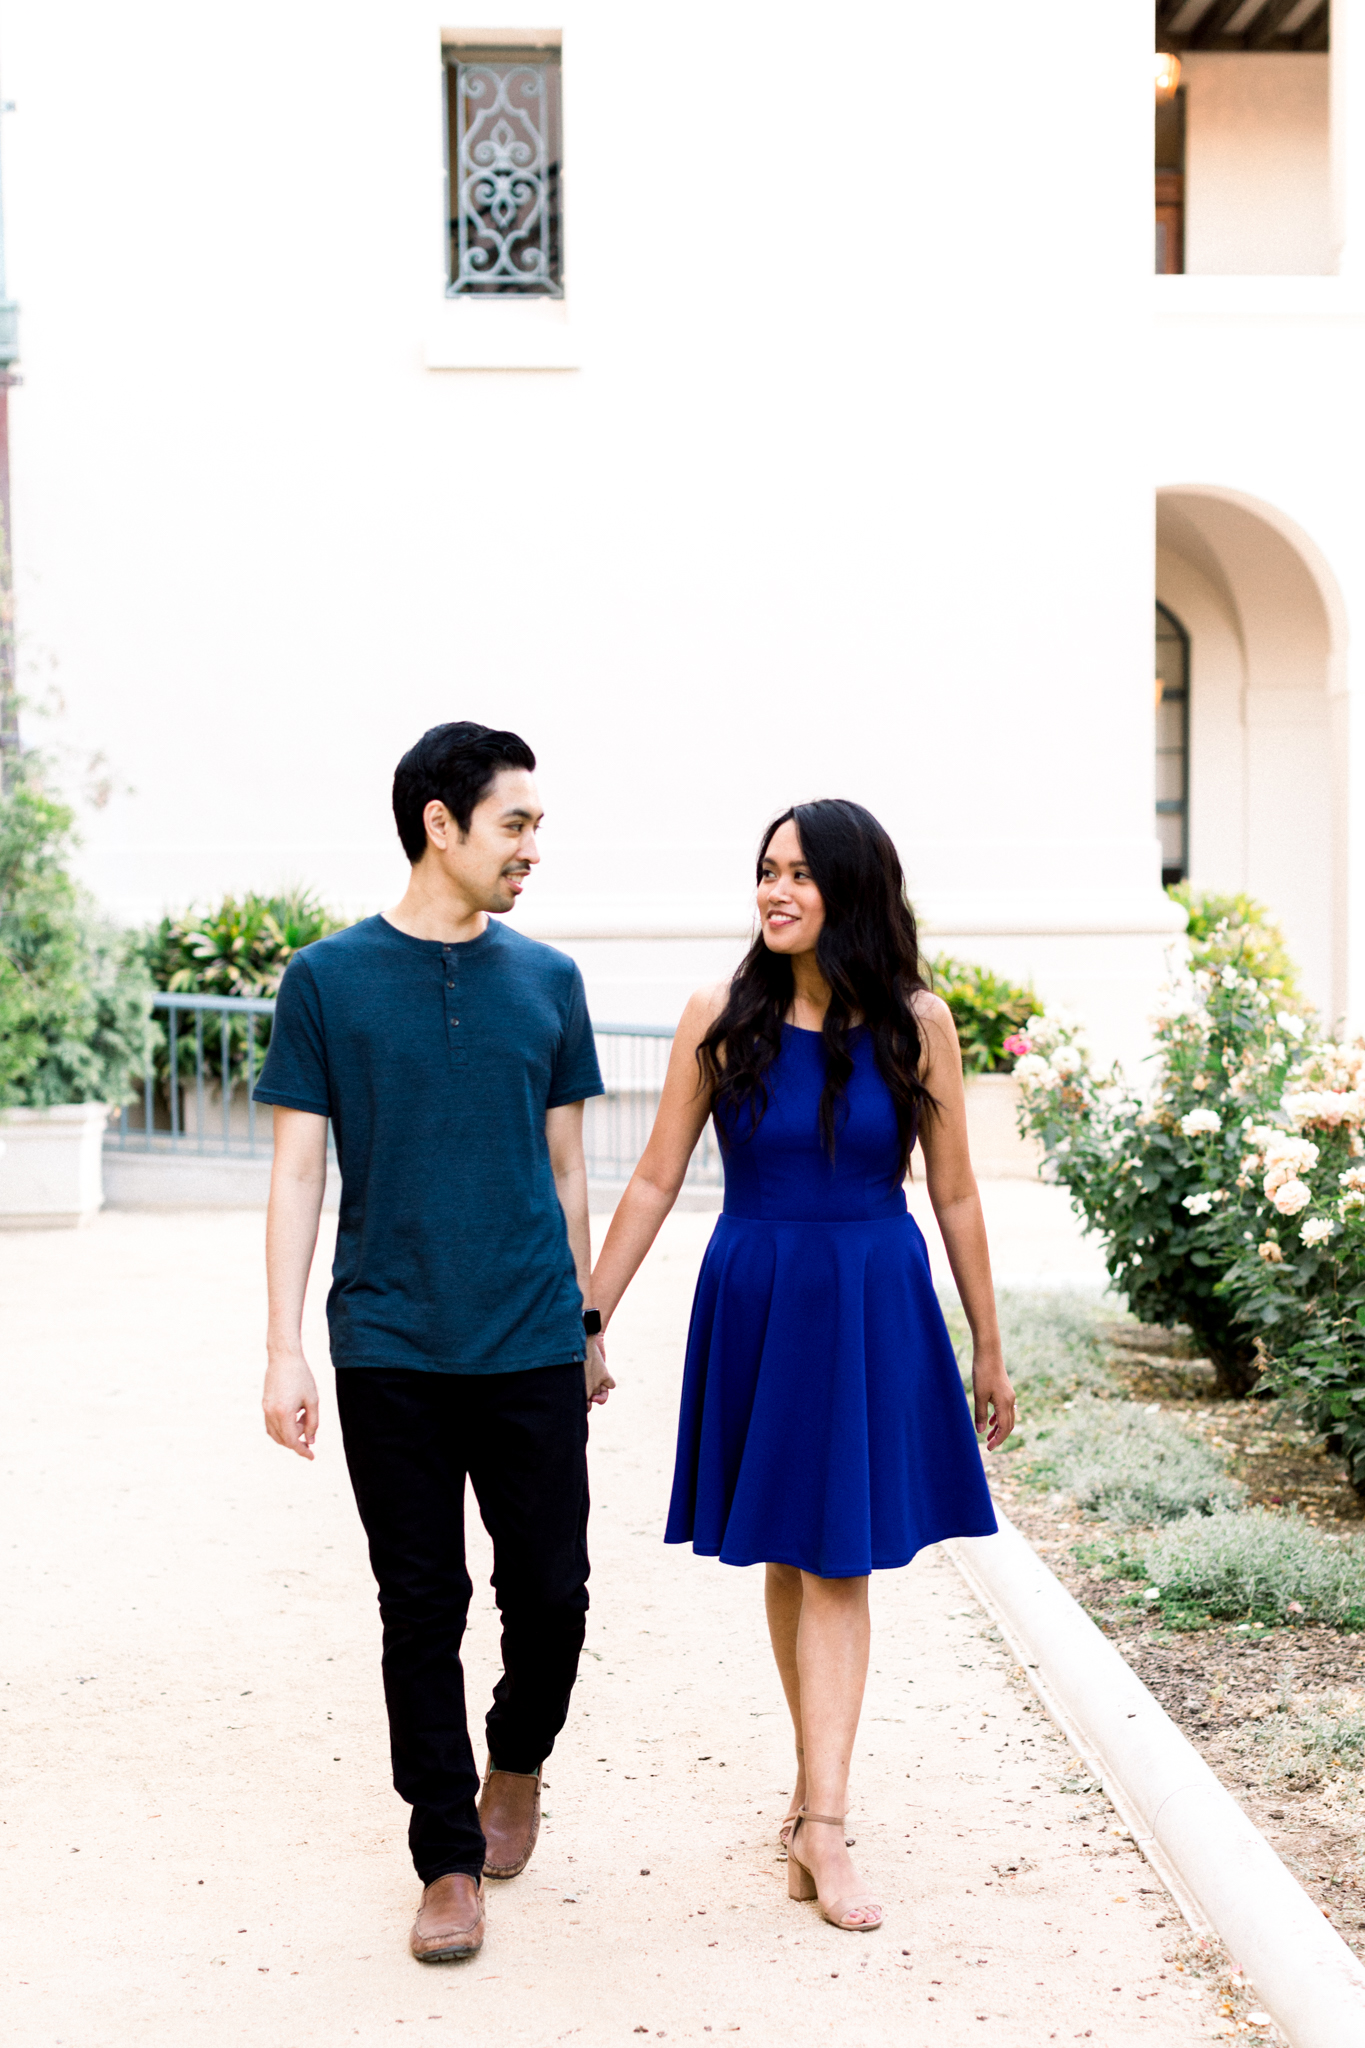 A couple walking together and looking at each other during their engagement photo session.